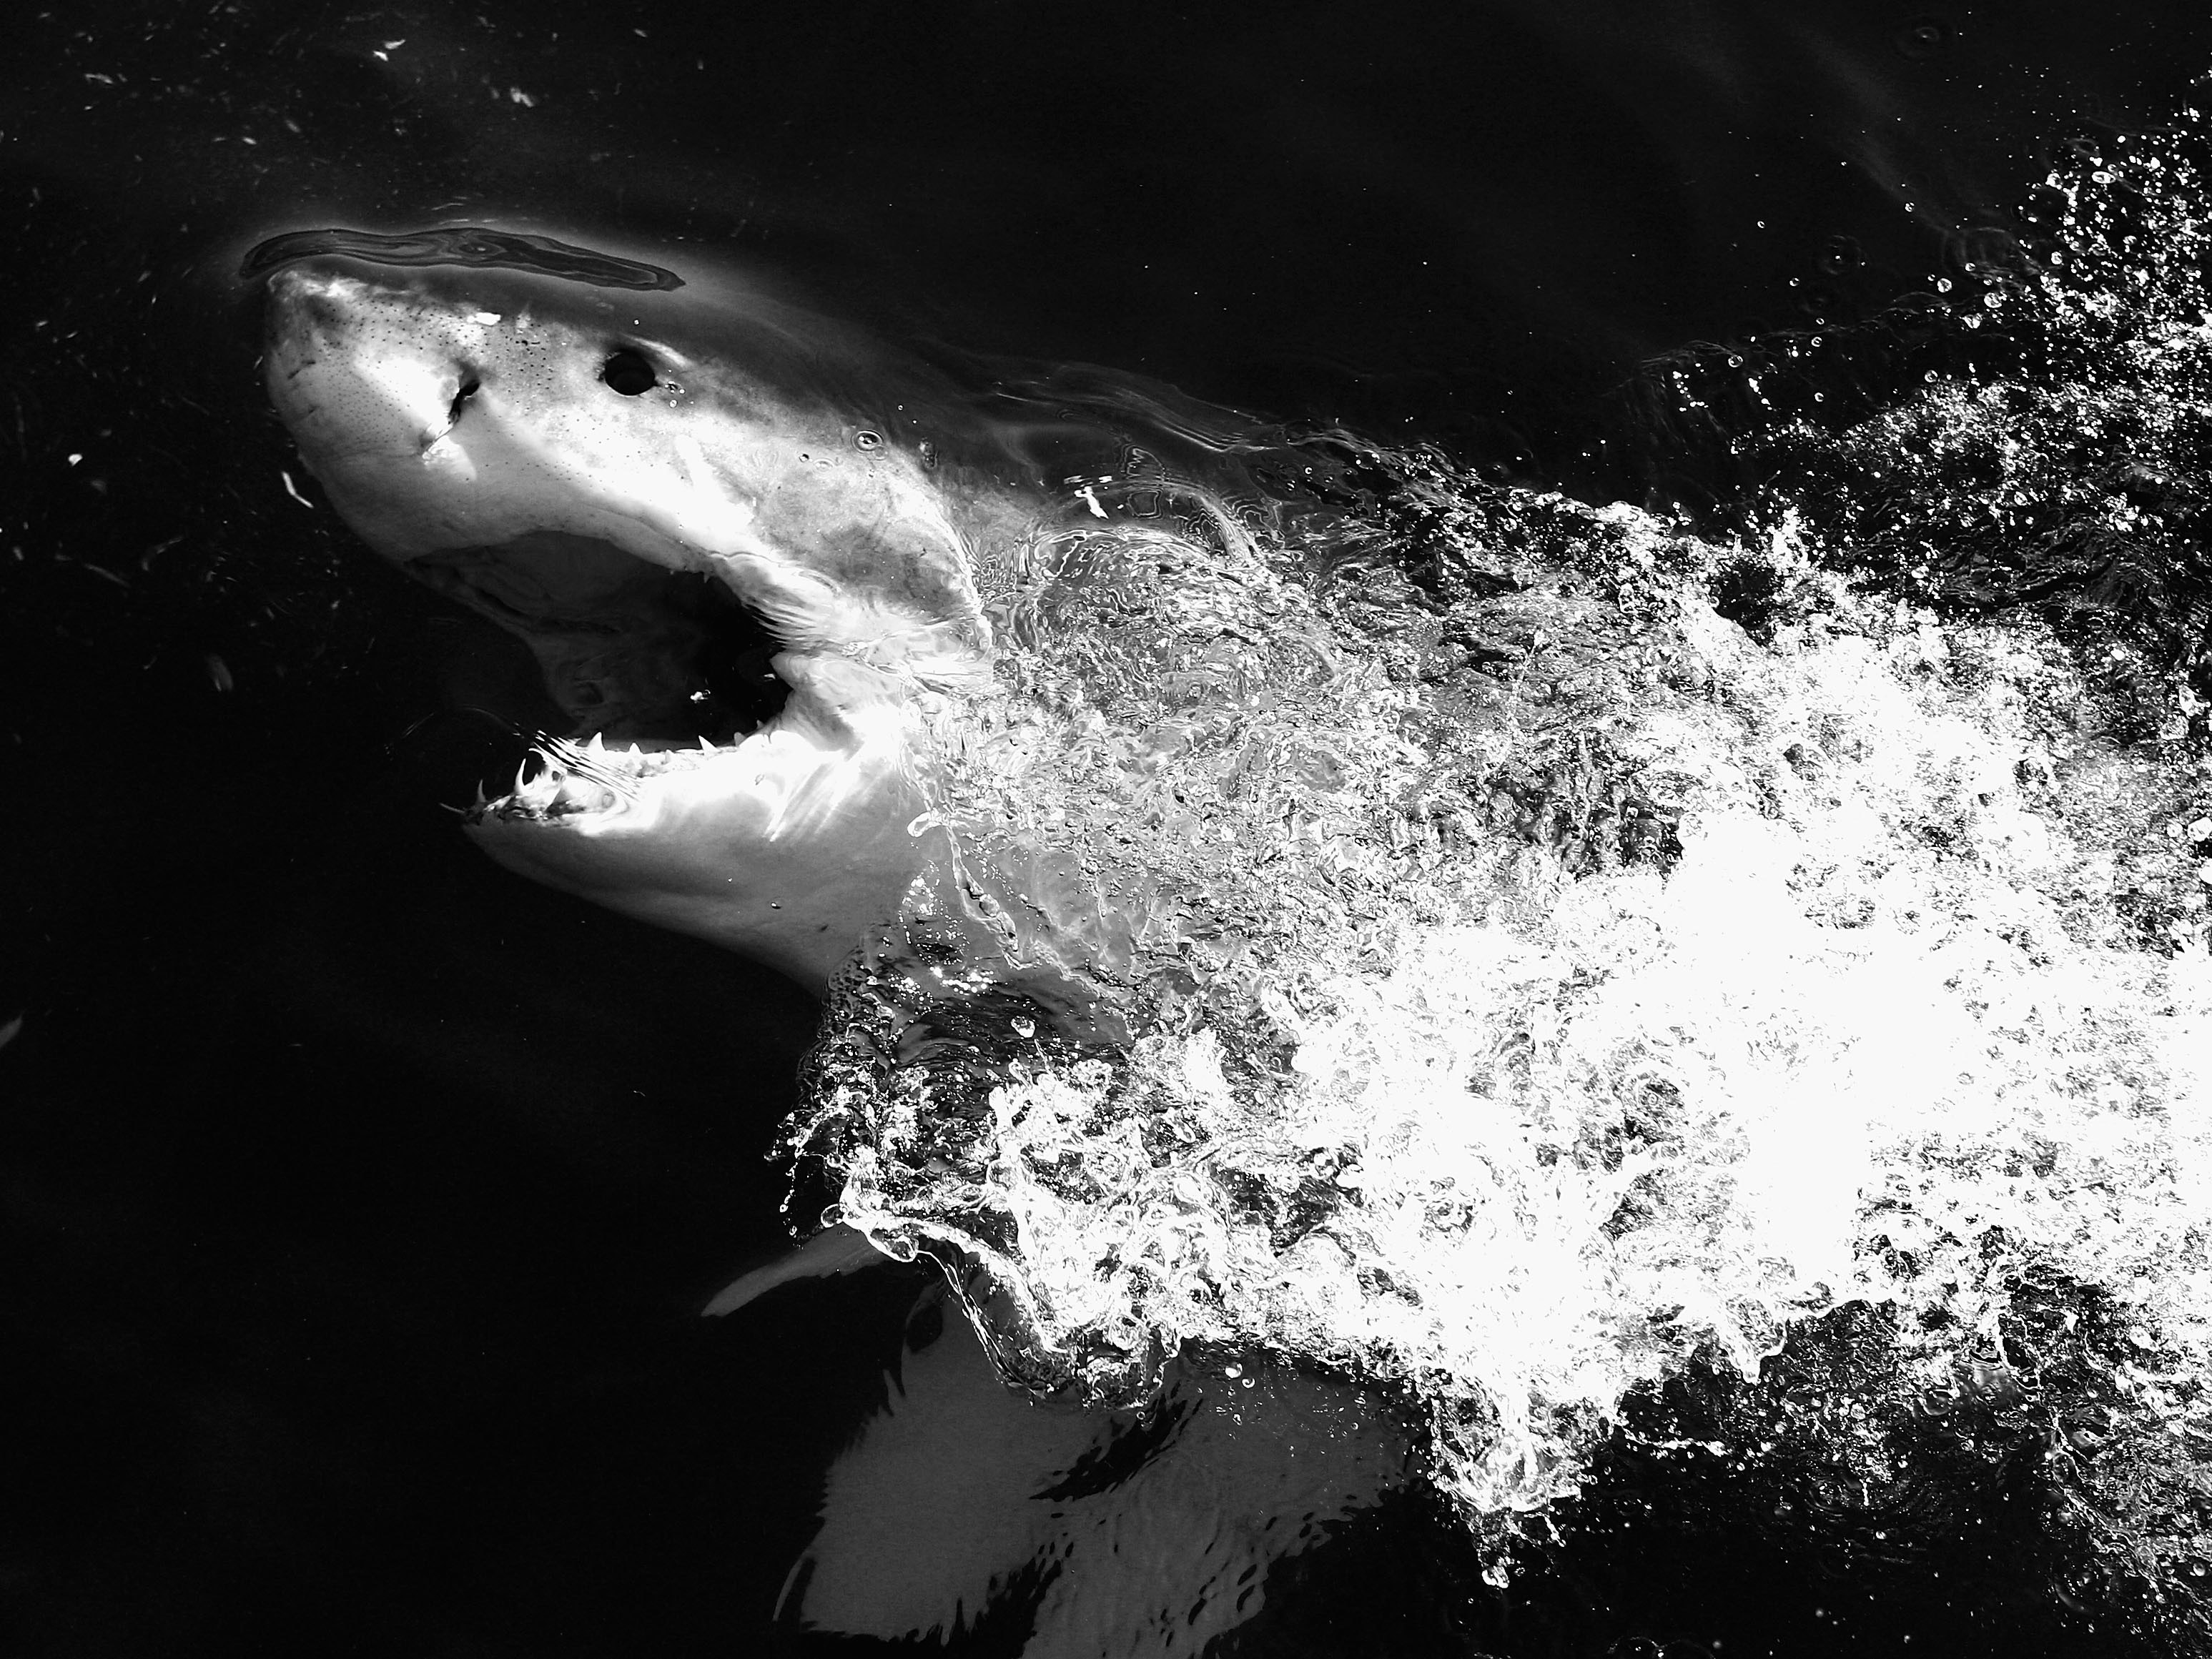 The Attacks That Inspired Our Fear of Sharks 100 Years Ago